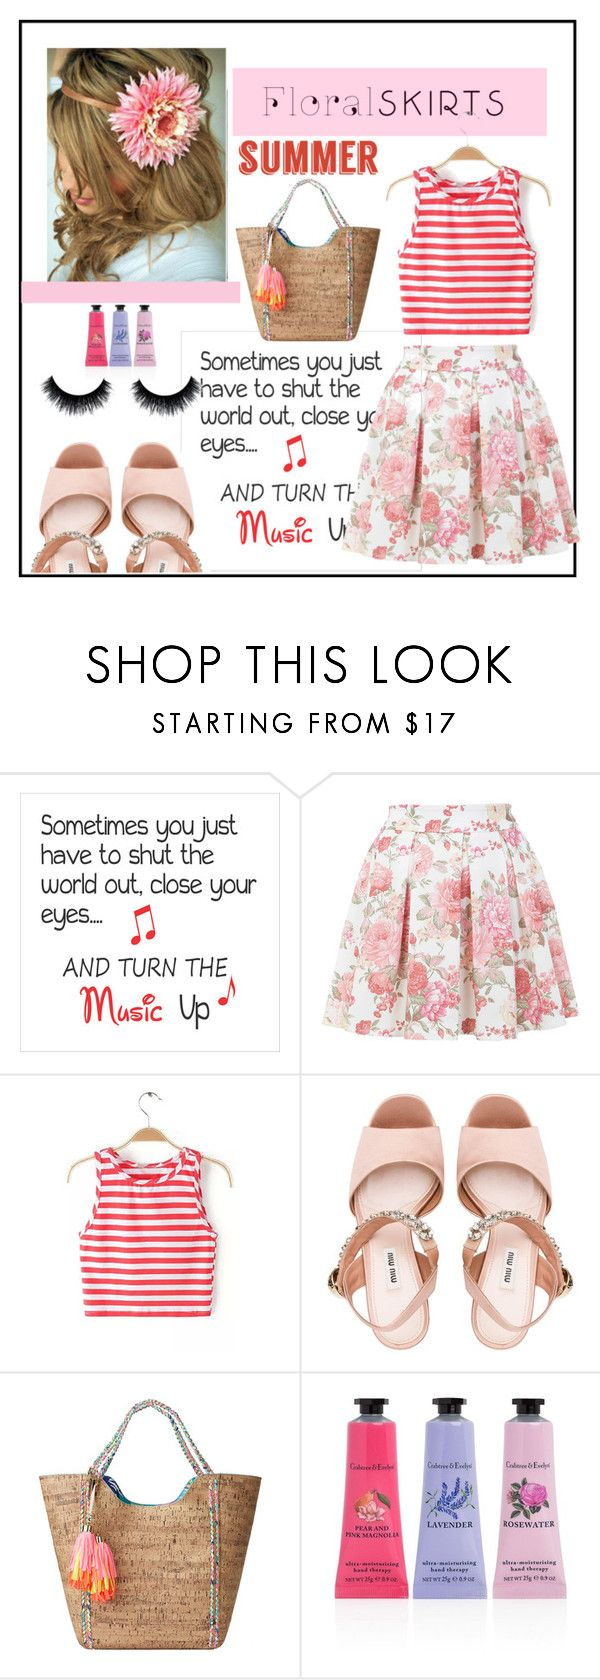 """""""lollipop"""" by aimbilal ❤ liked on Polyvore featuring Miss Selfridge, Miu Miu, Lilly Pulitzer, Crabtree & Evelyn and Floralskirts"""